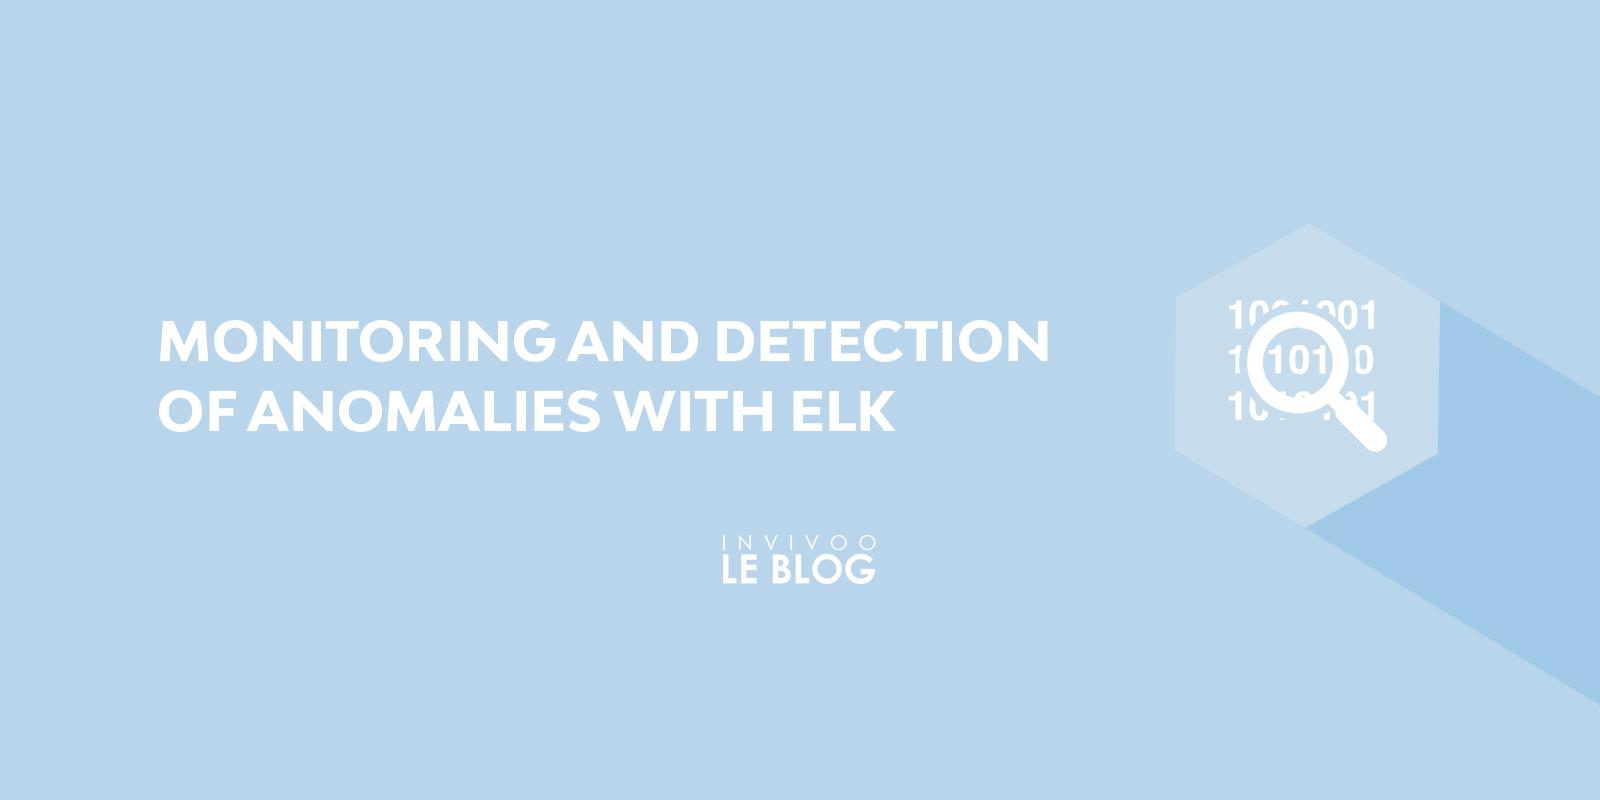 Monitoring and detection of anomalies with ELK